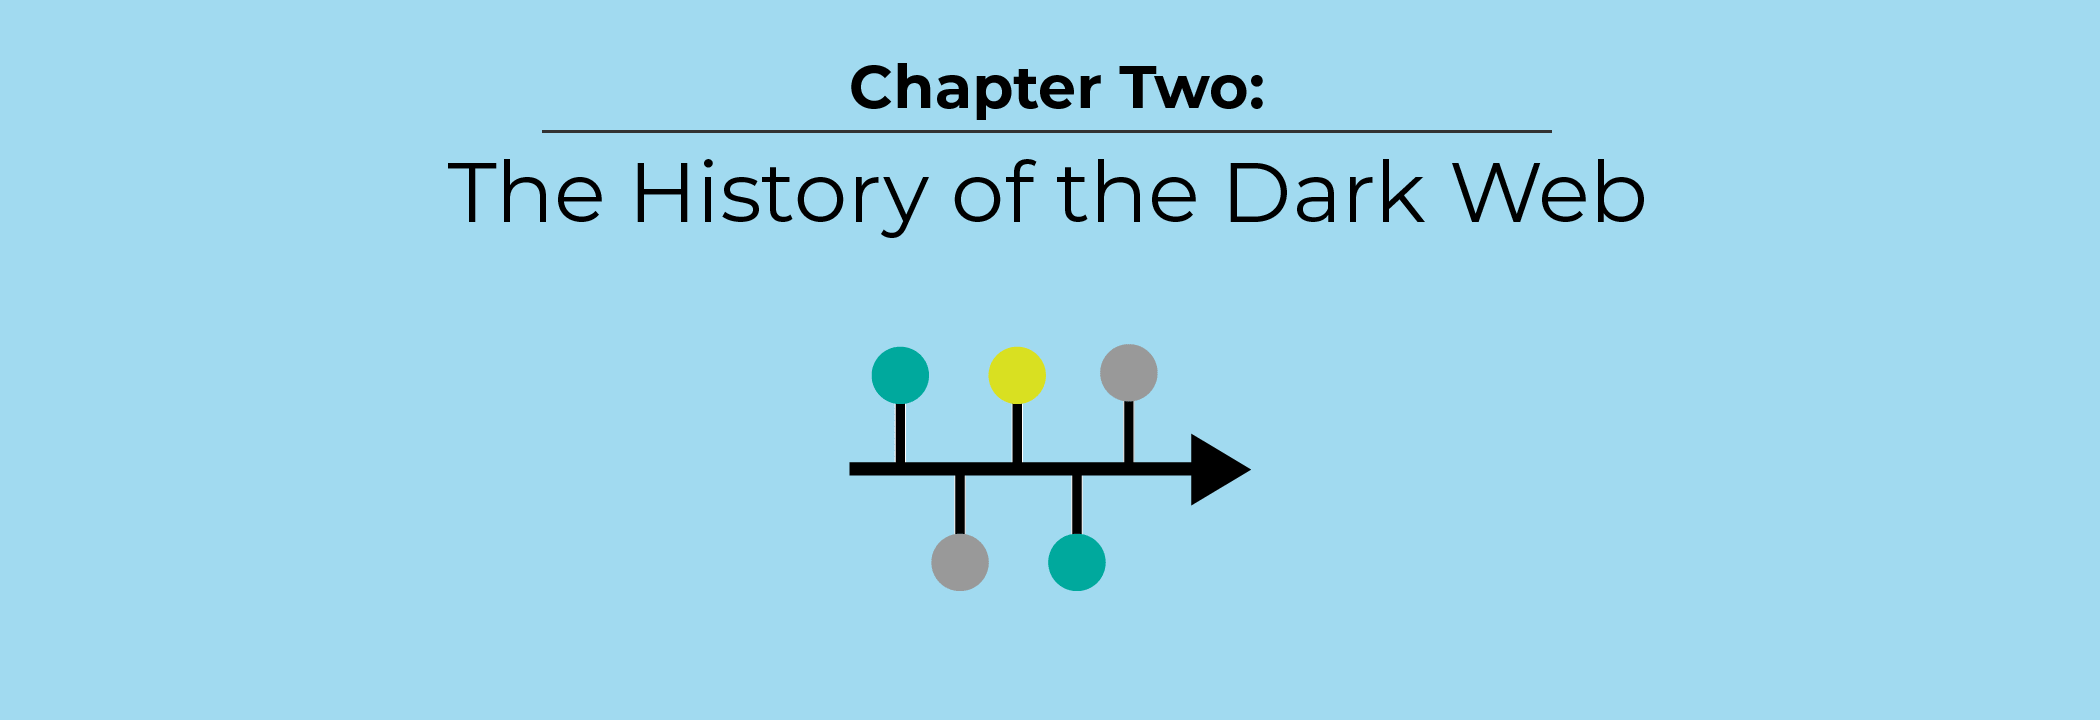 The History of the Dark Web